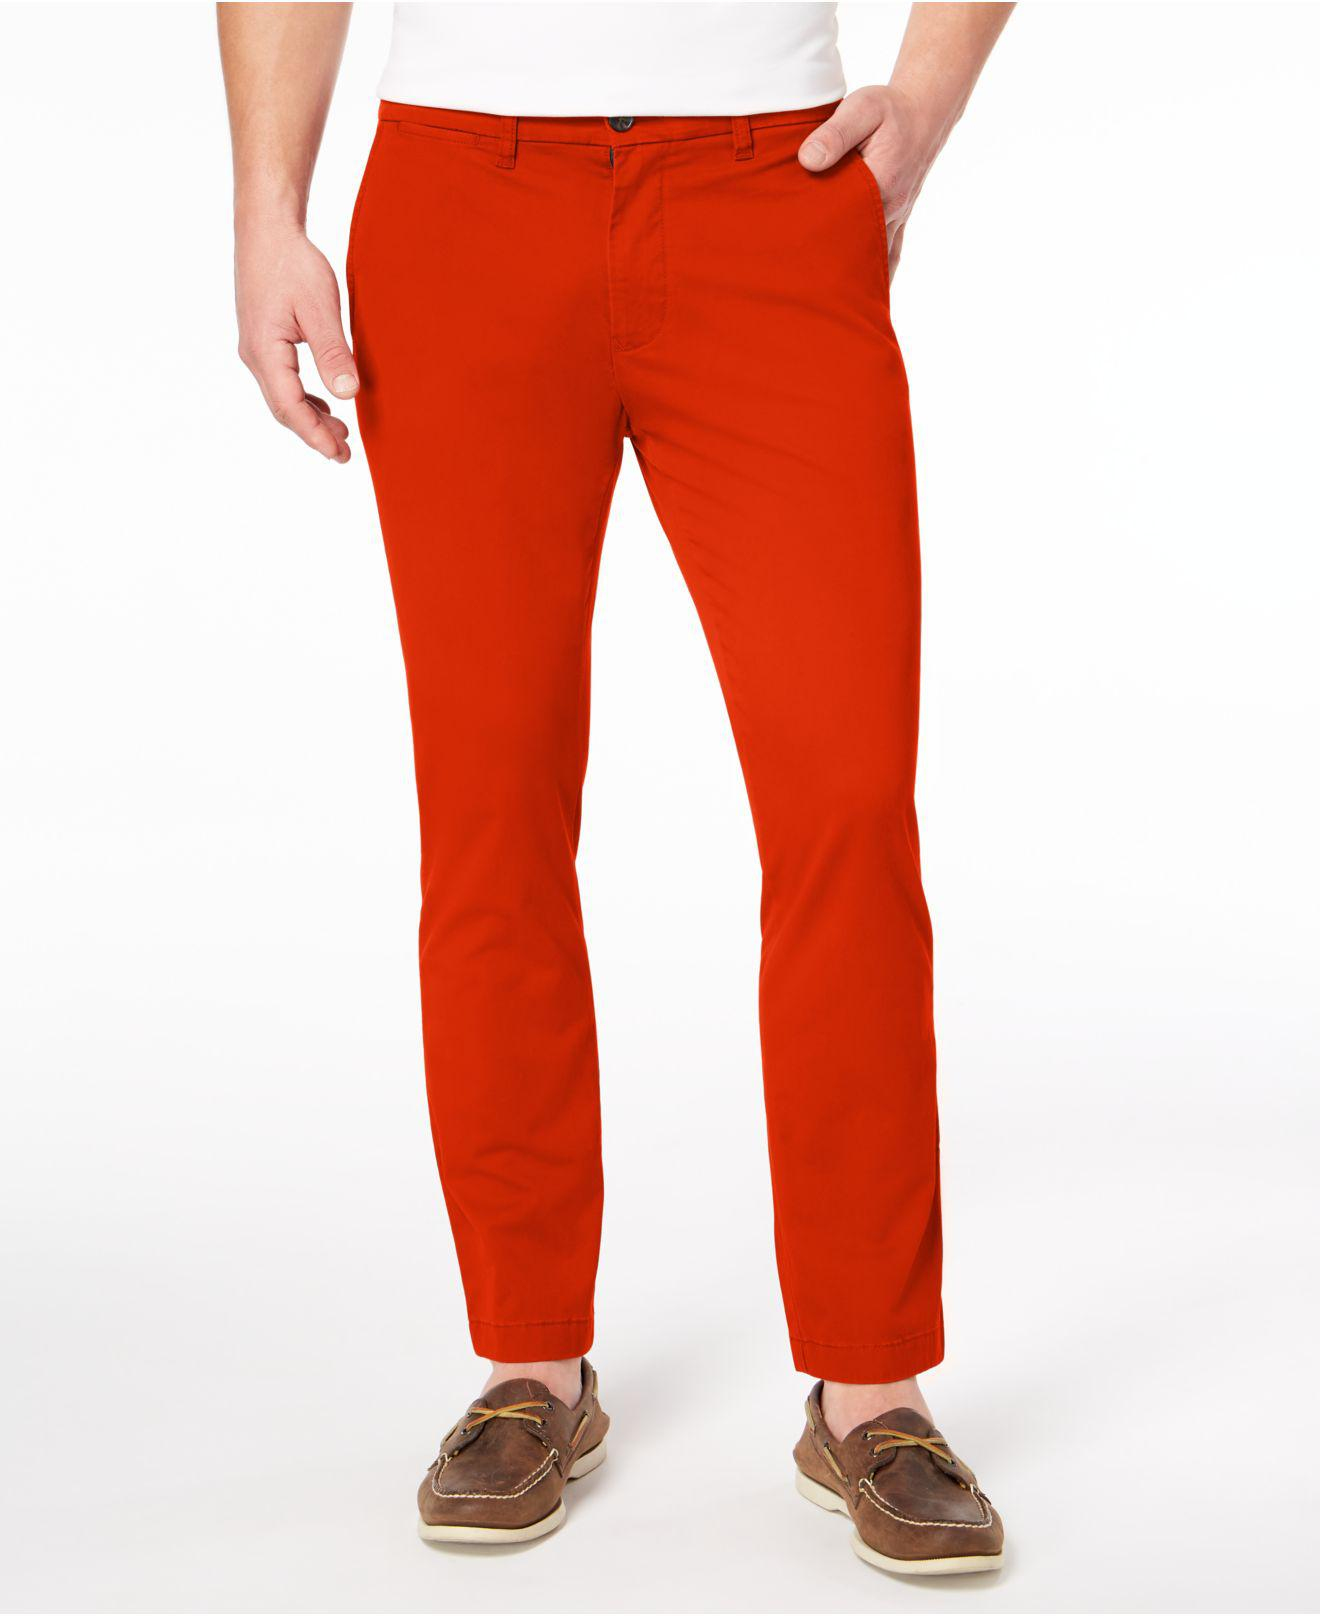 505325e6a Lyst - Tommy Hilfiger Th Flex Stretch Slim-fit Chino Pants, Created ...